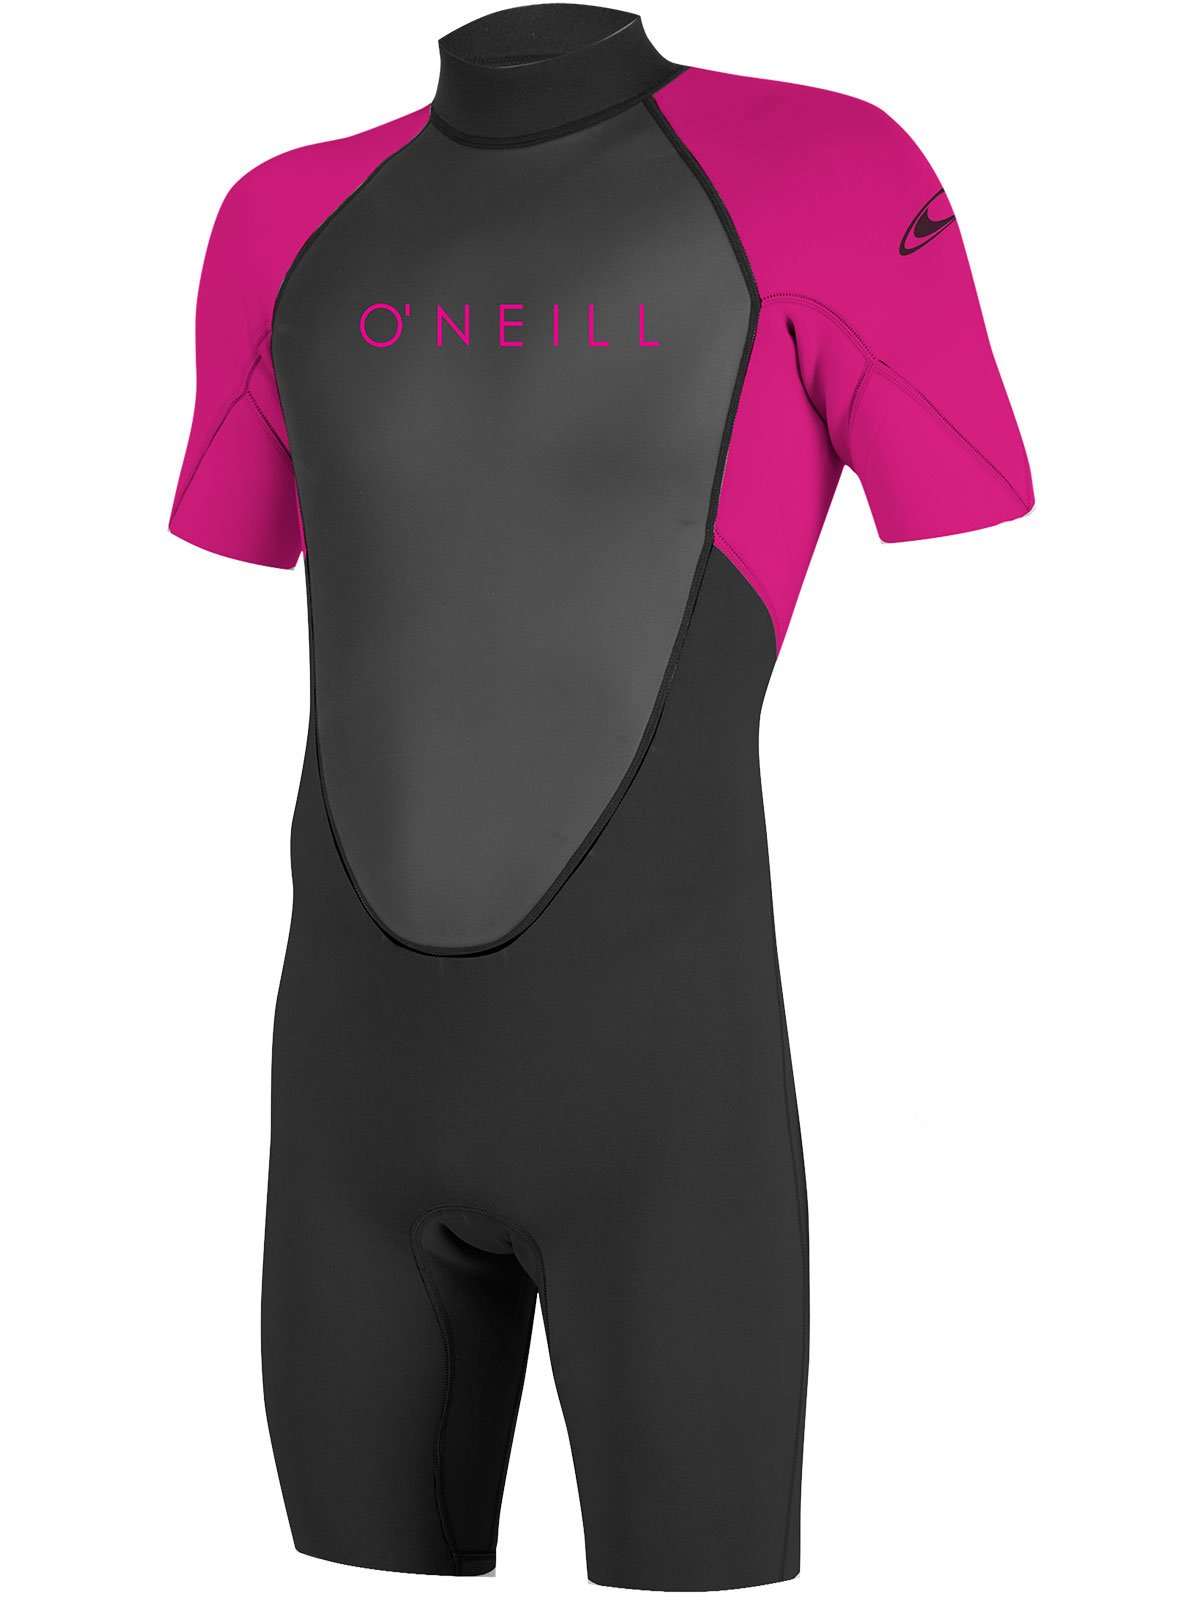 O'Neill Youth Reactor-2 2mm Back Zip Short Sleeve Spring Wetsuit, Black/Berry, 14 by O'Neill Wetsuits